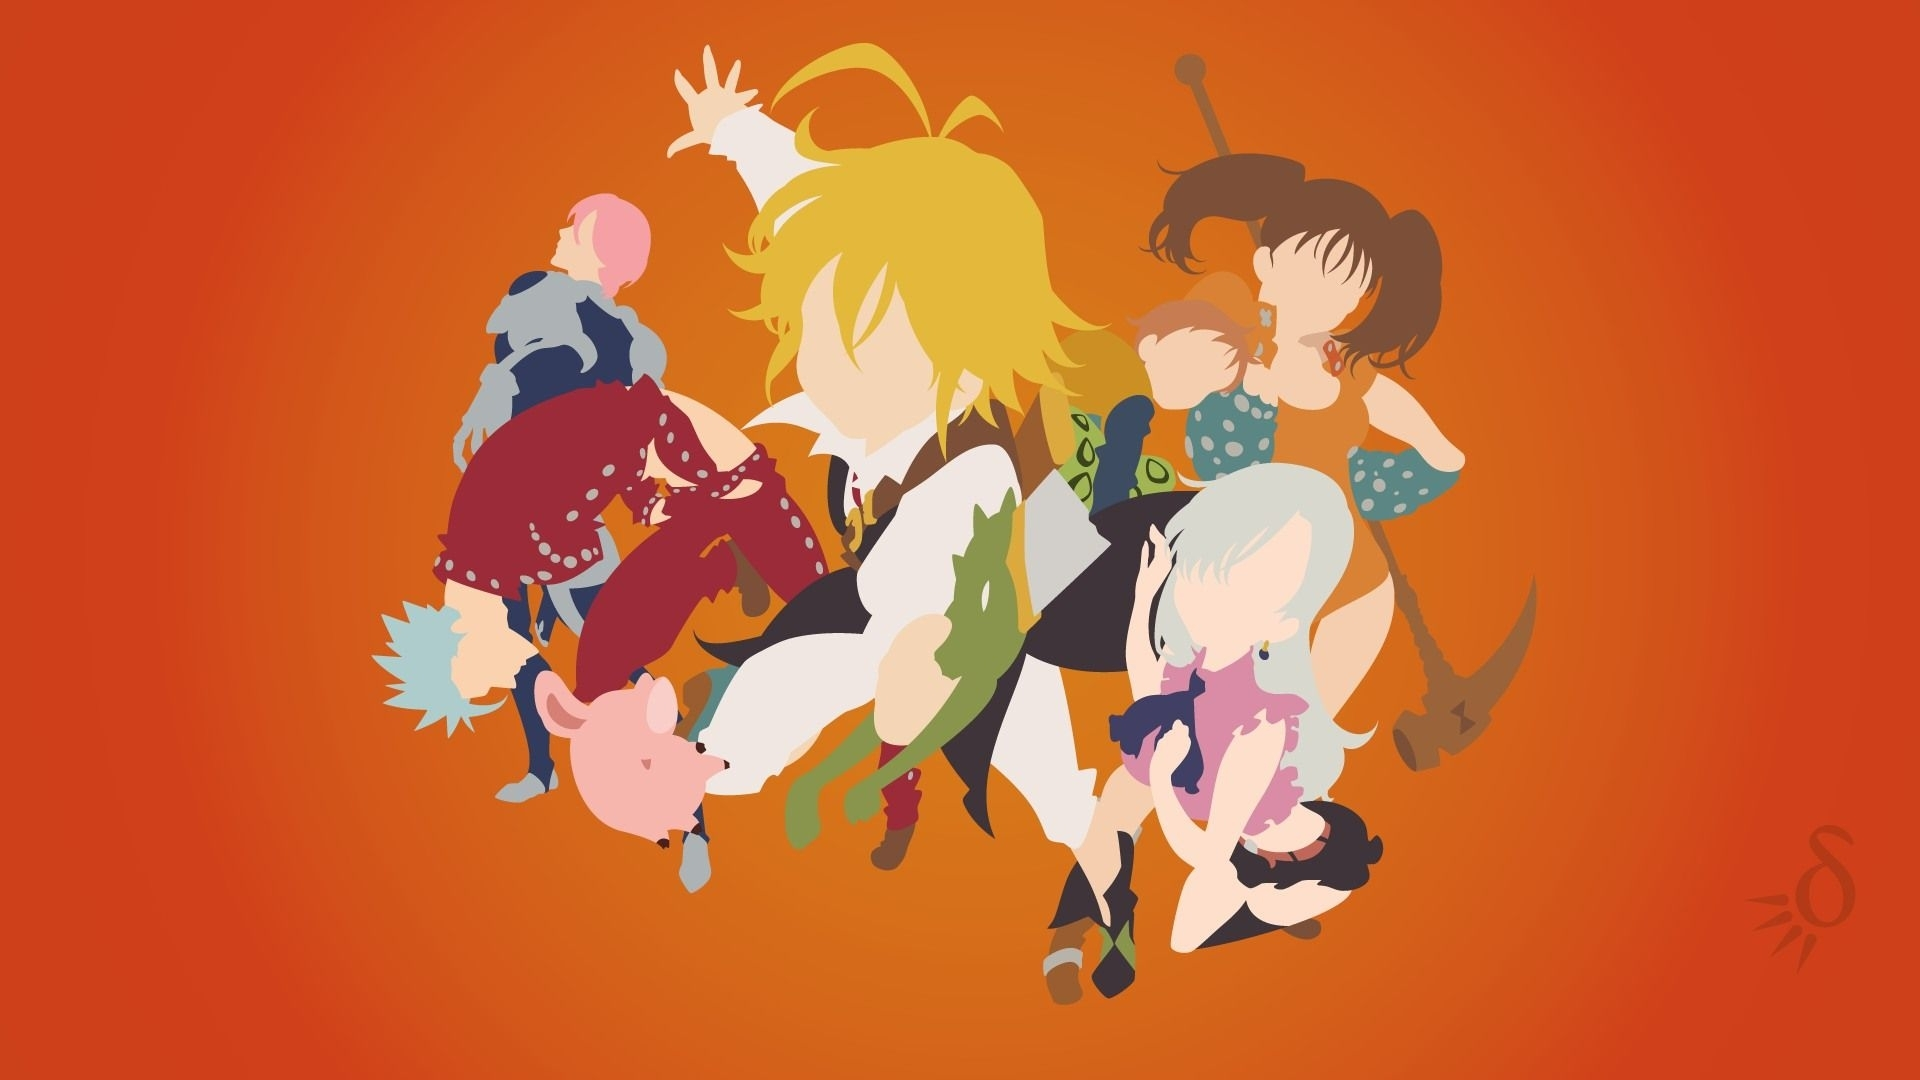 Image Result For Image Result For Anime Wallpaper Free Download Pc